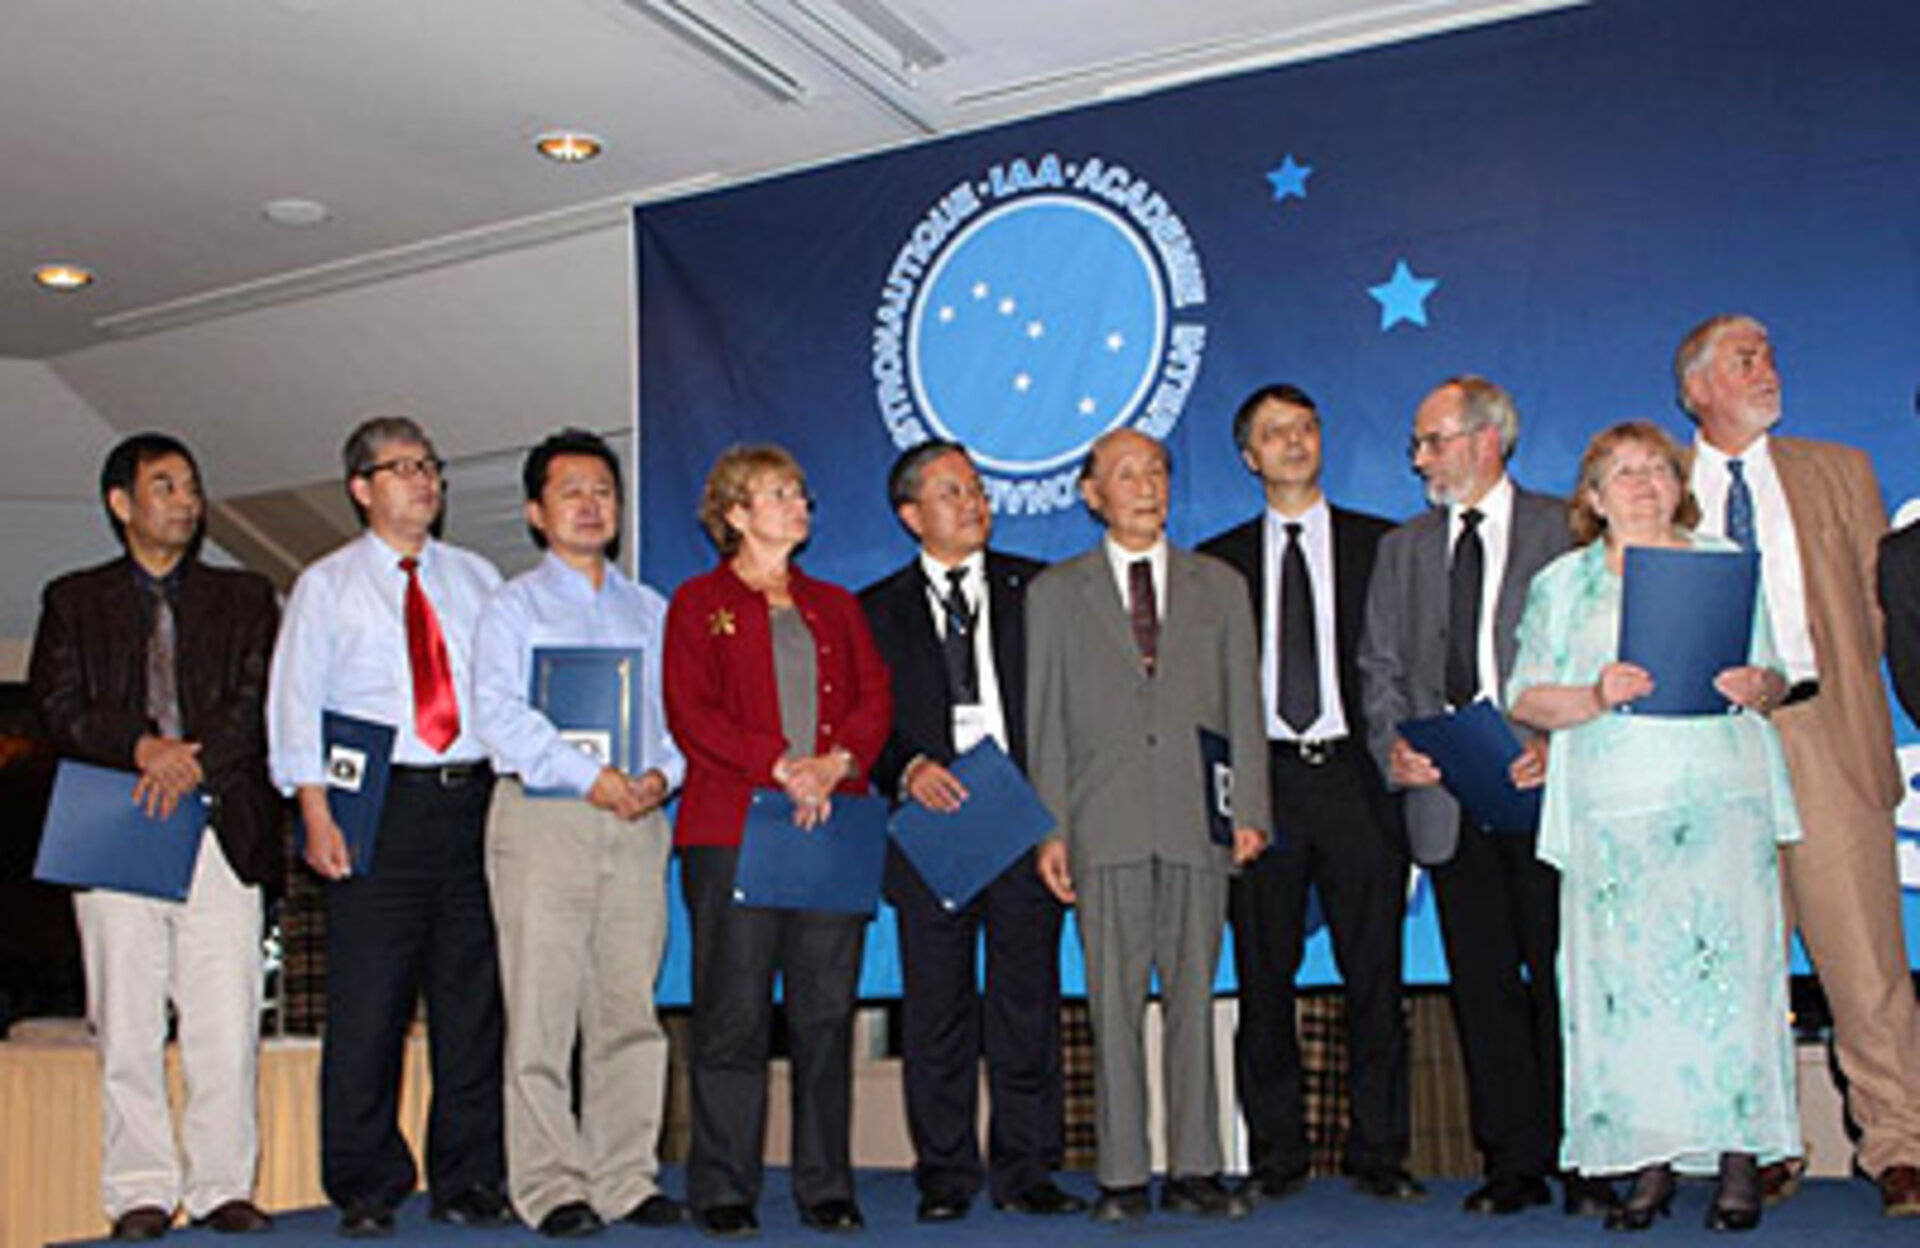 Ceremony for the International Academy of Astronautics Laurels 2010